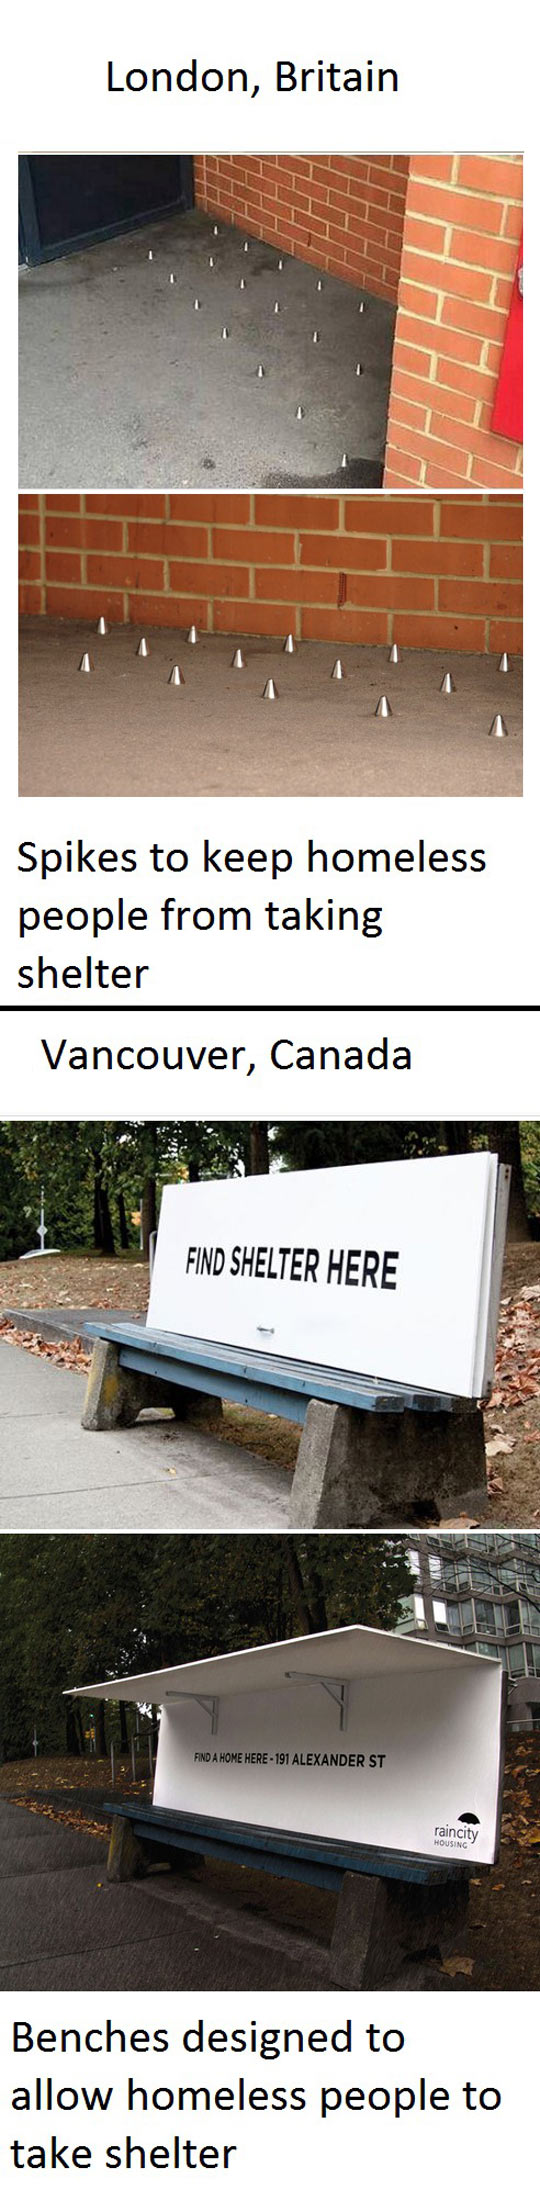 Kindness Once Again Spotted In Canada